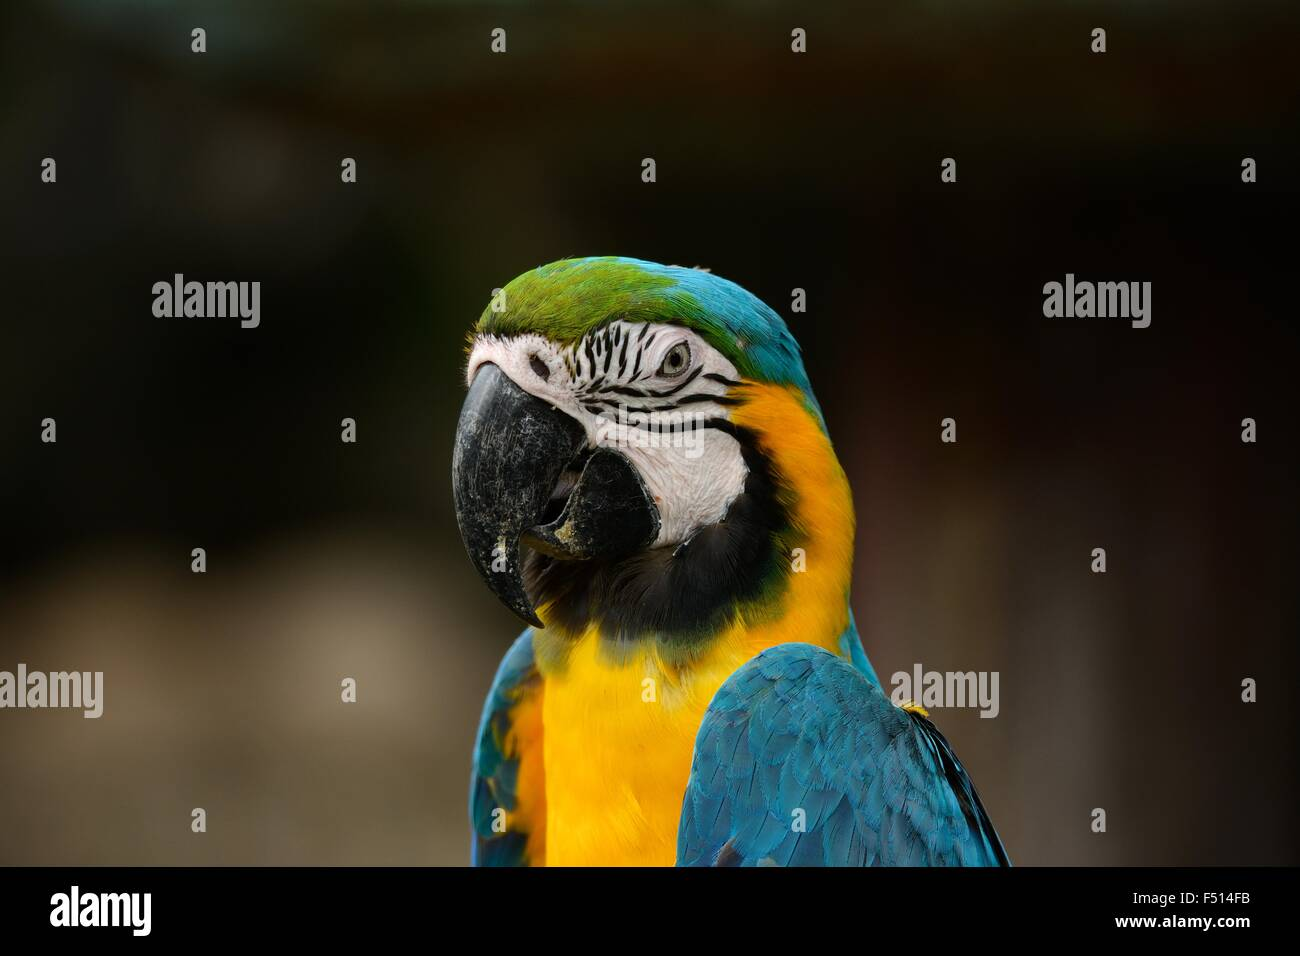 beautiful Blue-and-yellow Macaw (Ara ararauna), also known as the Blue-and-gold Macaw - Stock Image